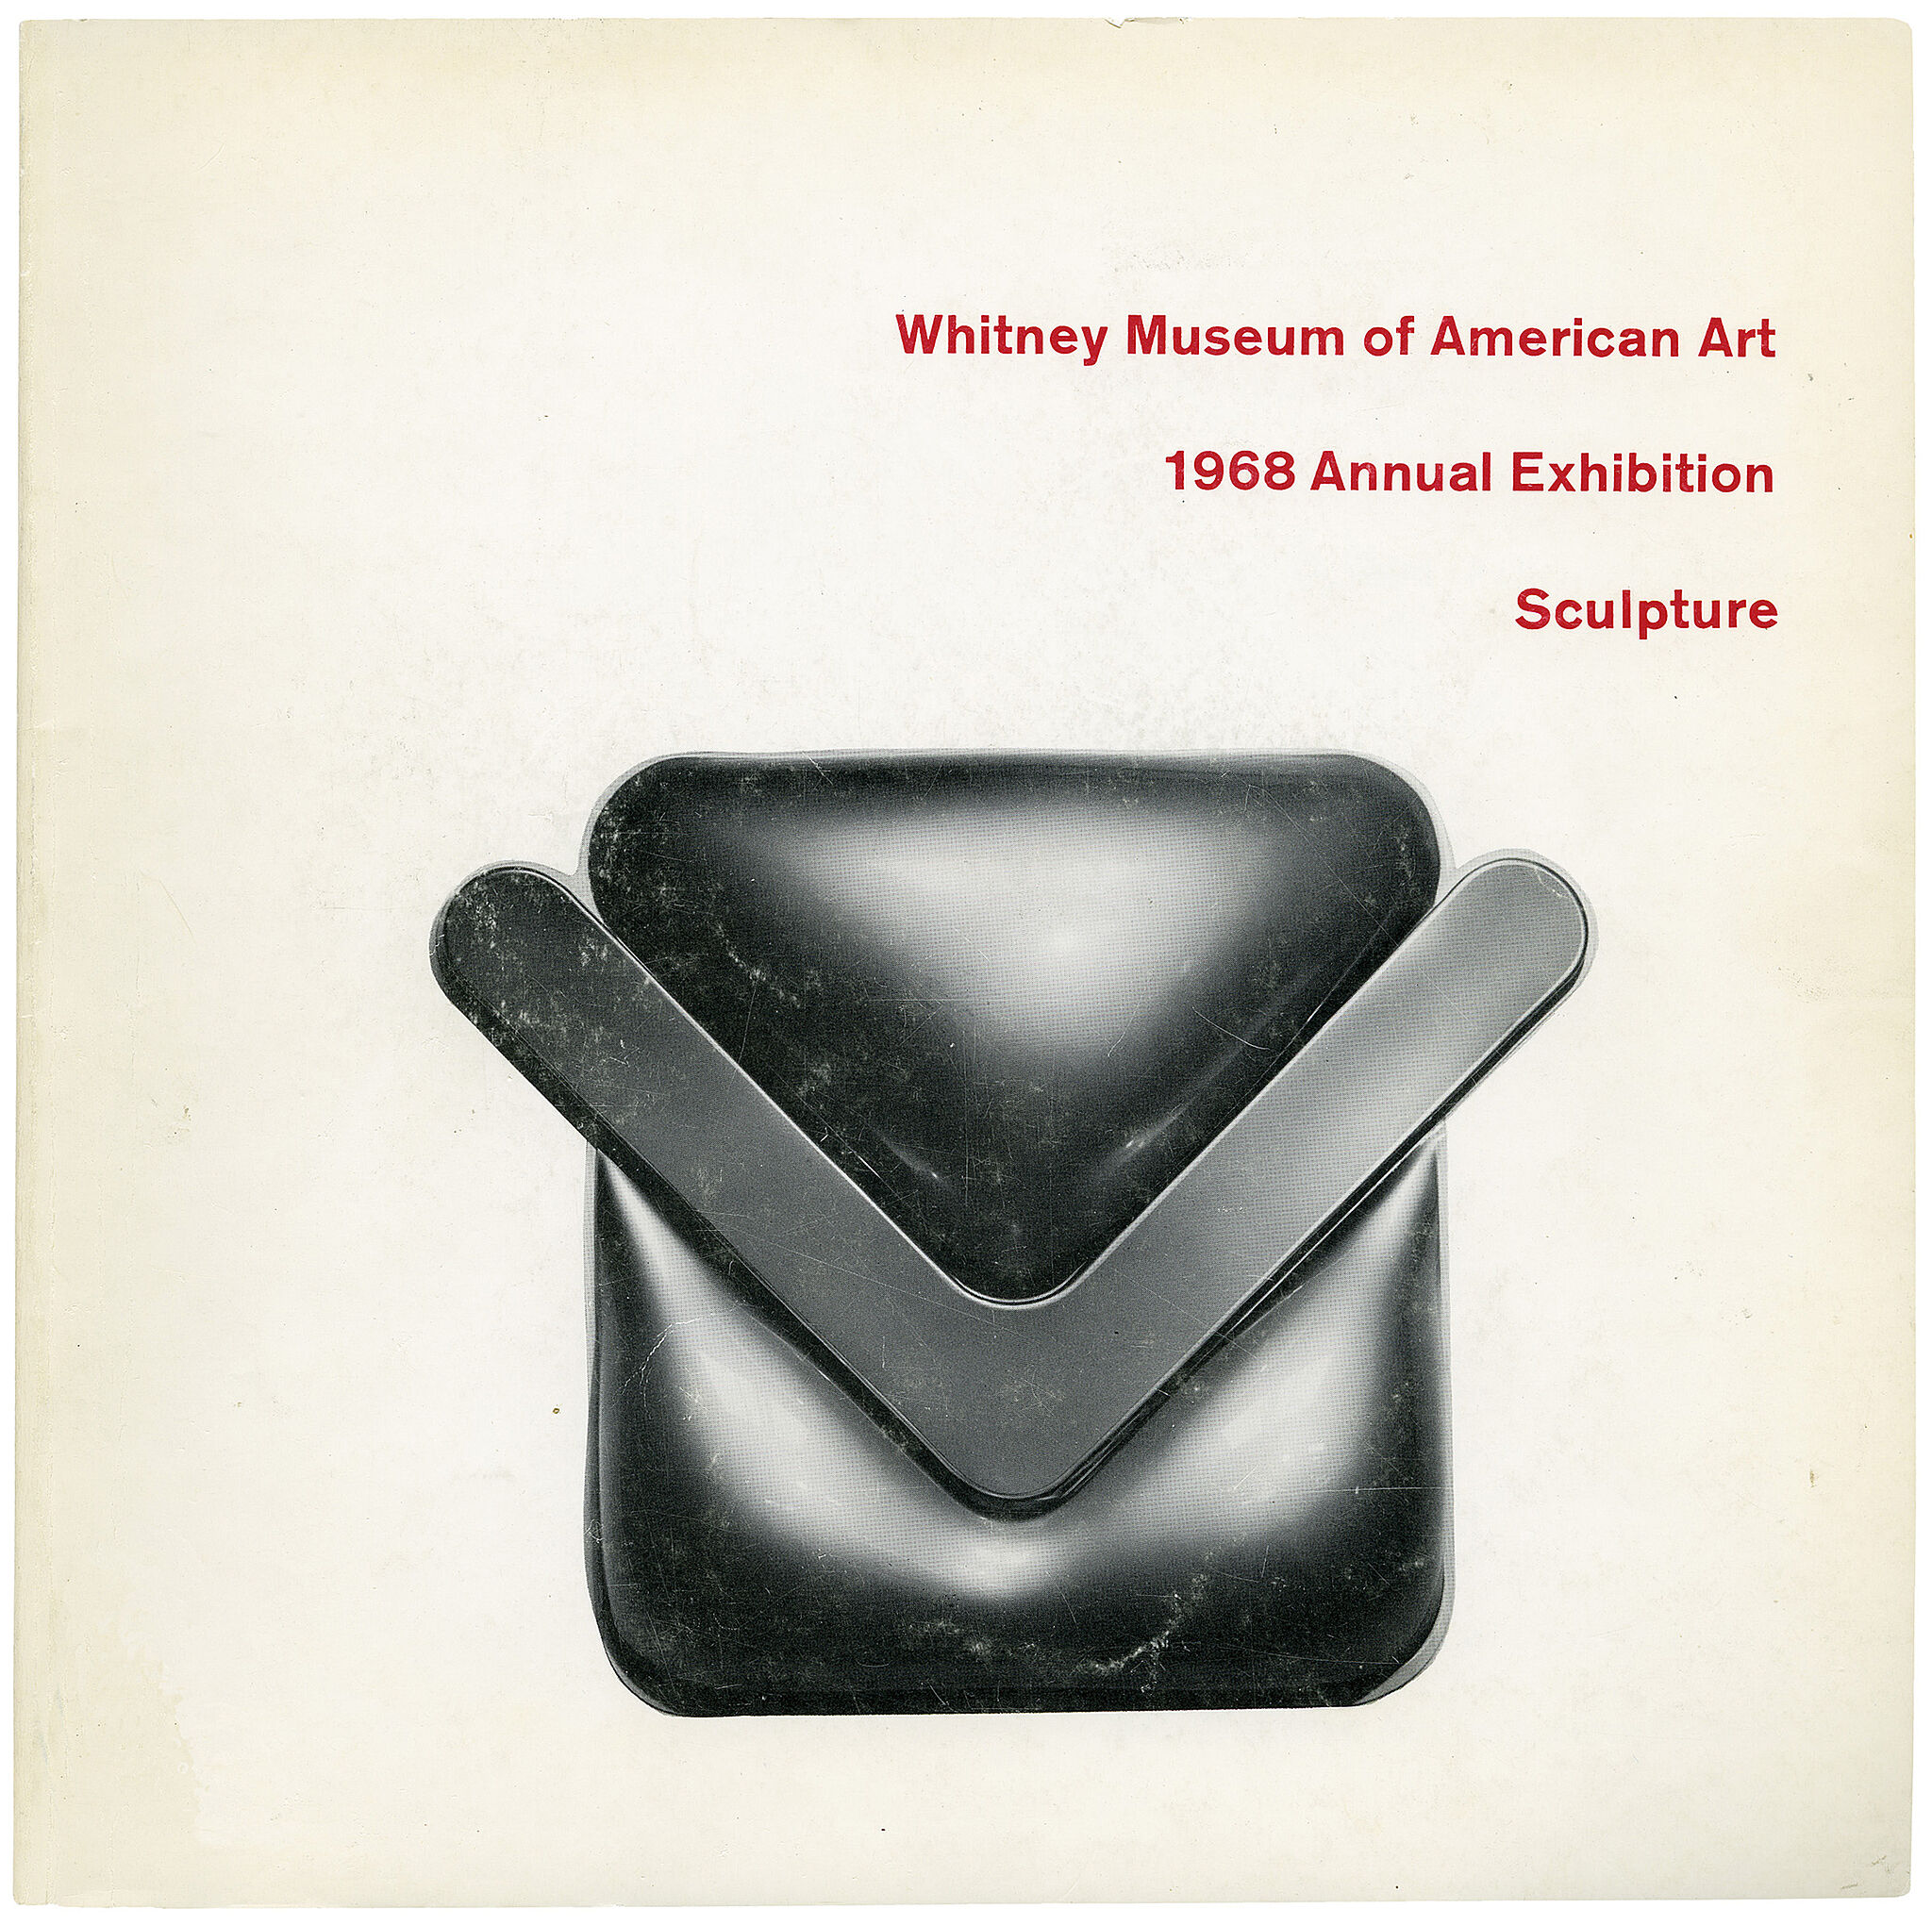 Catalogue cover for the 1968 Annual Exhibition: Contemporary American Sculpture